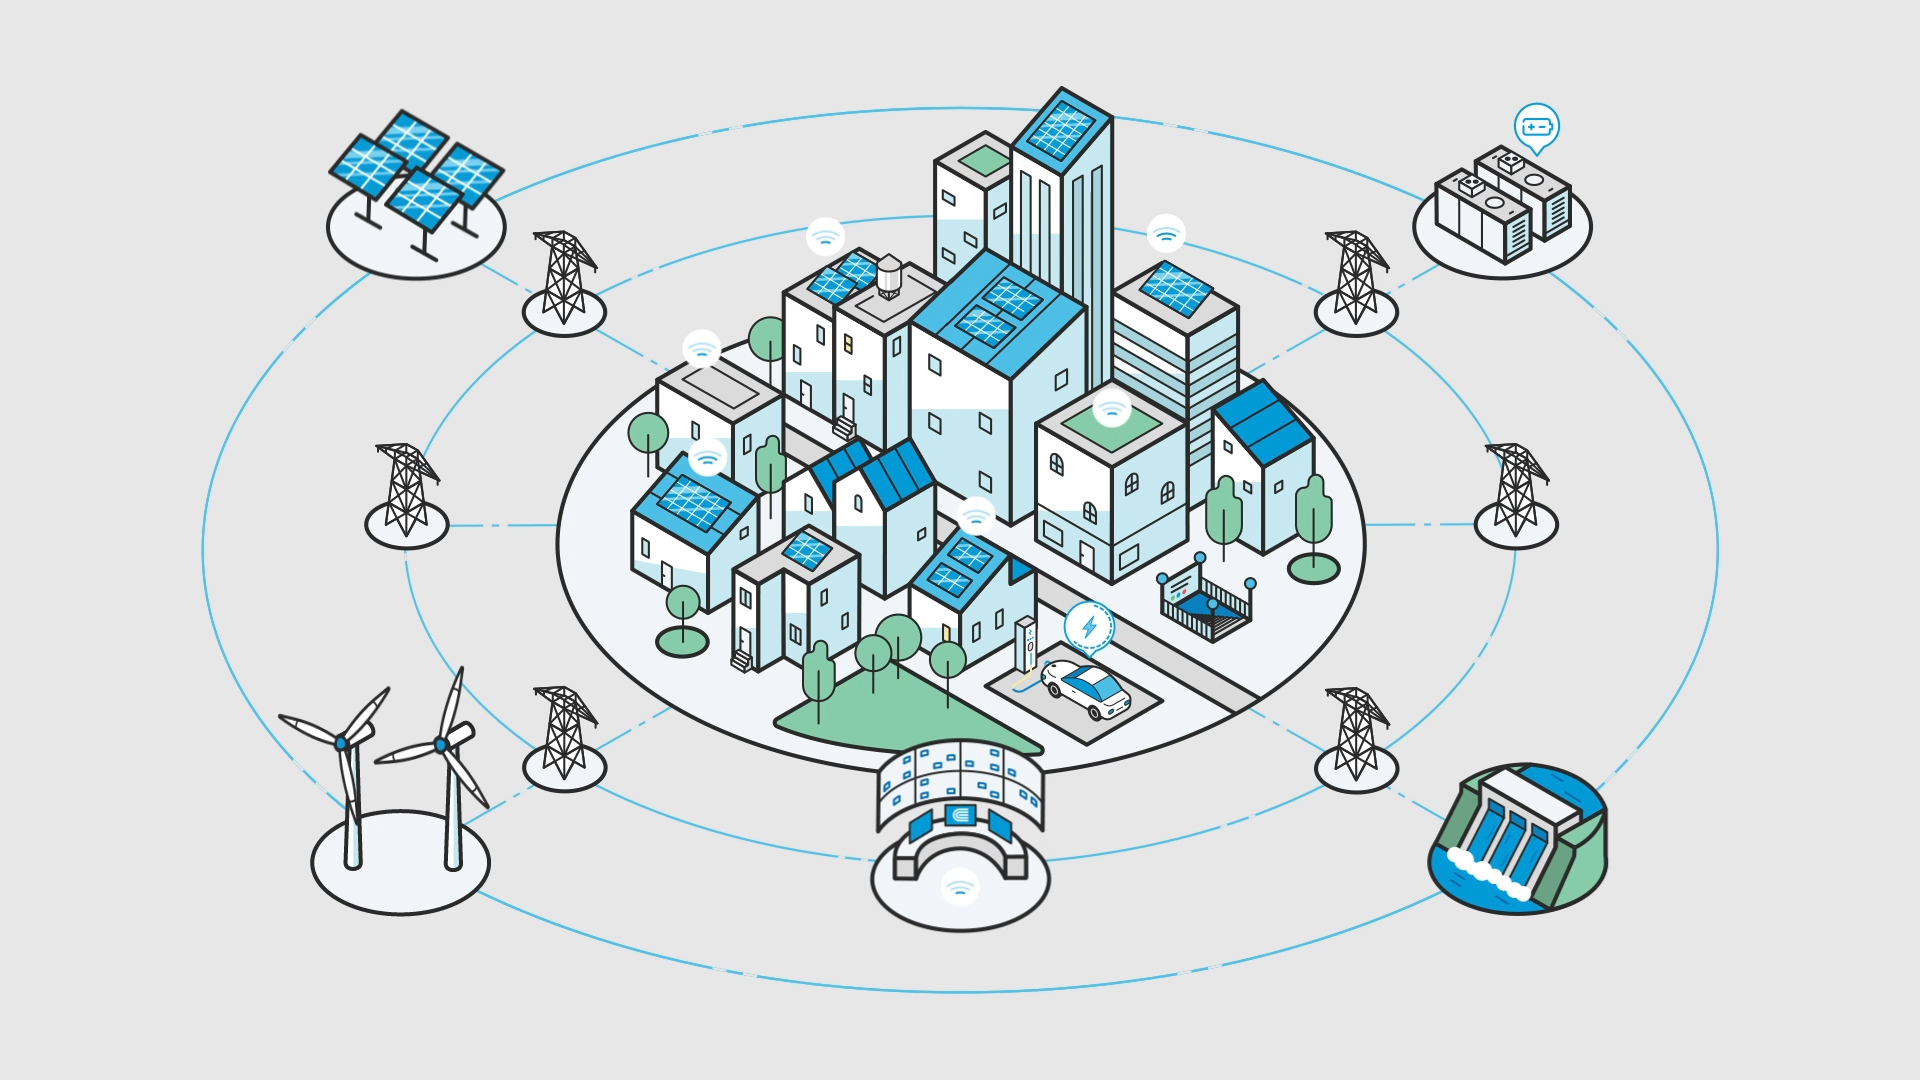 A city is shown on top of a circular grid, powered by electricity. Natural gas, solar and hydro power also connect in to the circular grid to help power the houses and building in the city.